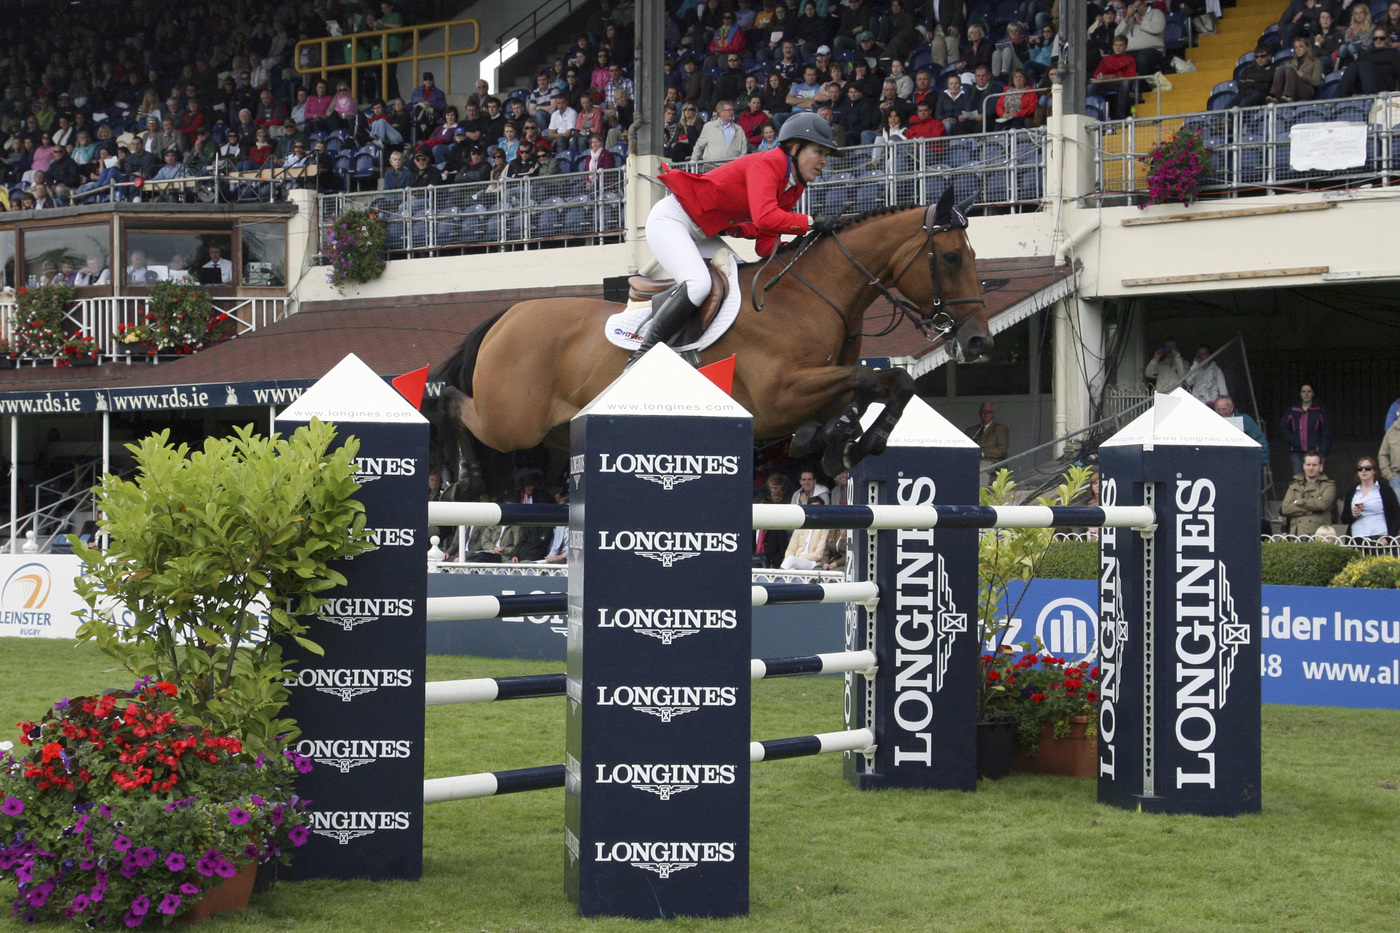 Longines Show Jumping Event: The Dublin Horse Show, where Longines was the official partner and timekeeper, lived up to the expectations last weekend 1